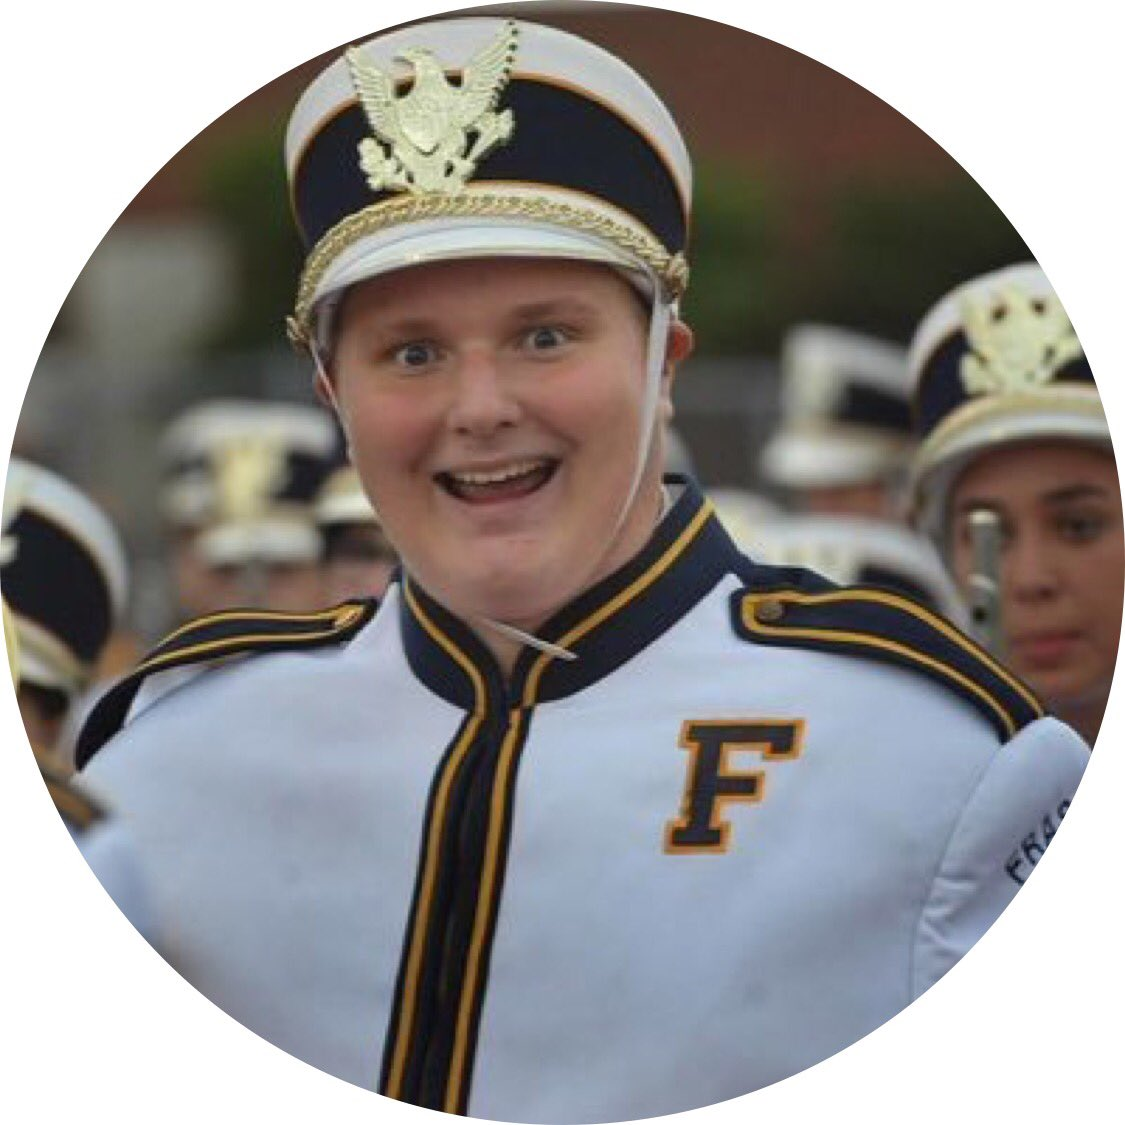 1000 retreats and I&#39;ll wear my marching uniform to prom. #prom #RetweeetPlease <br>http://pic.twitter.com/i7KOxIrwHF